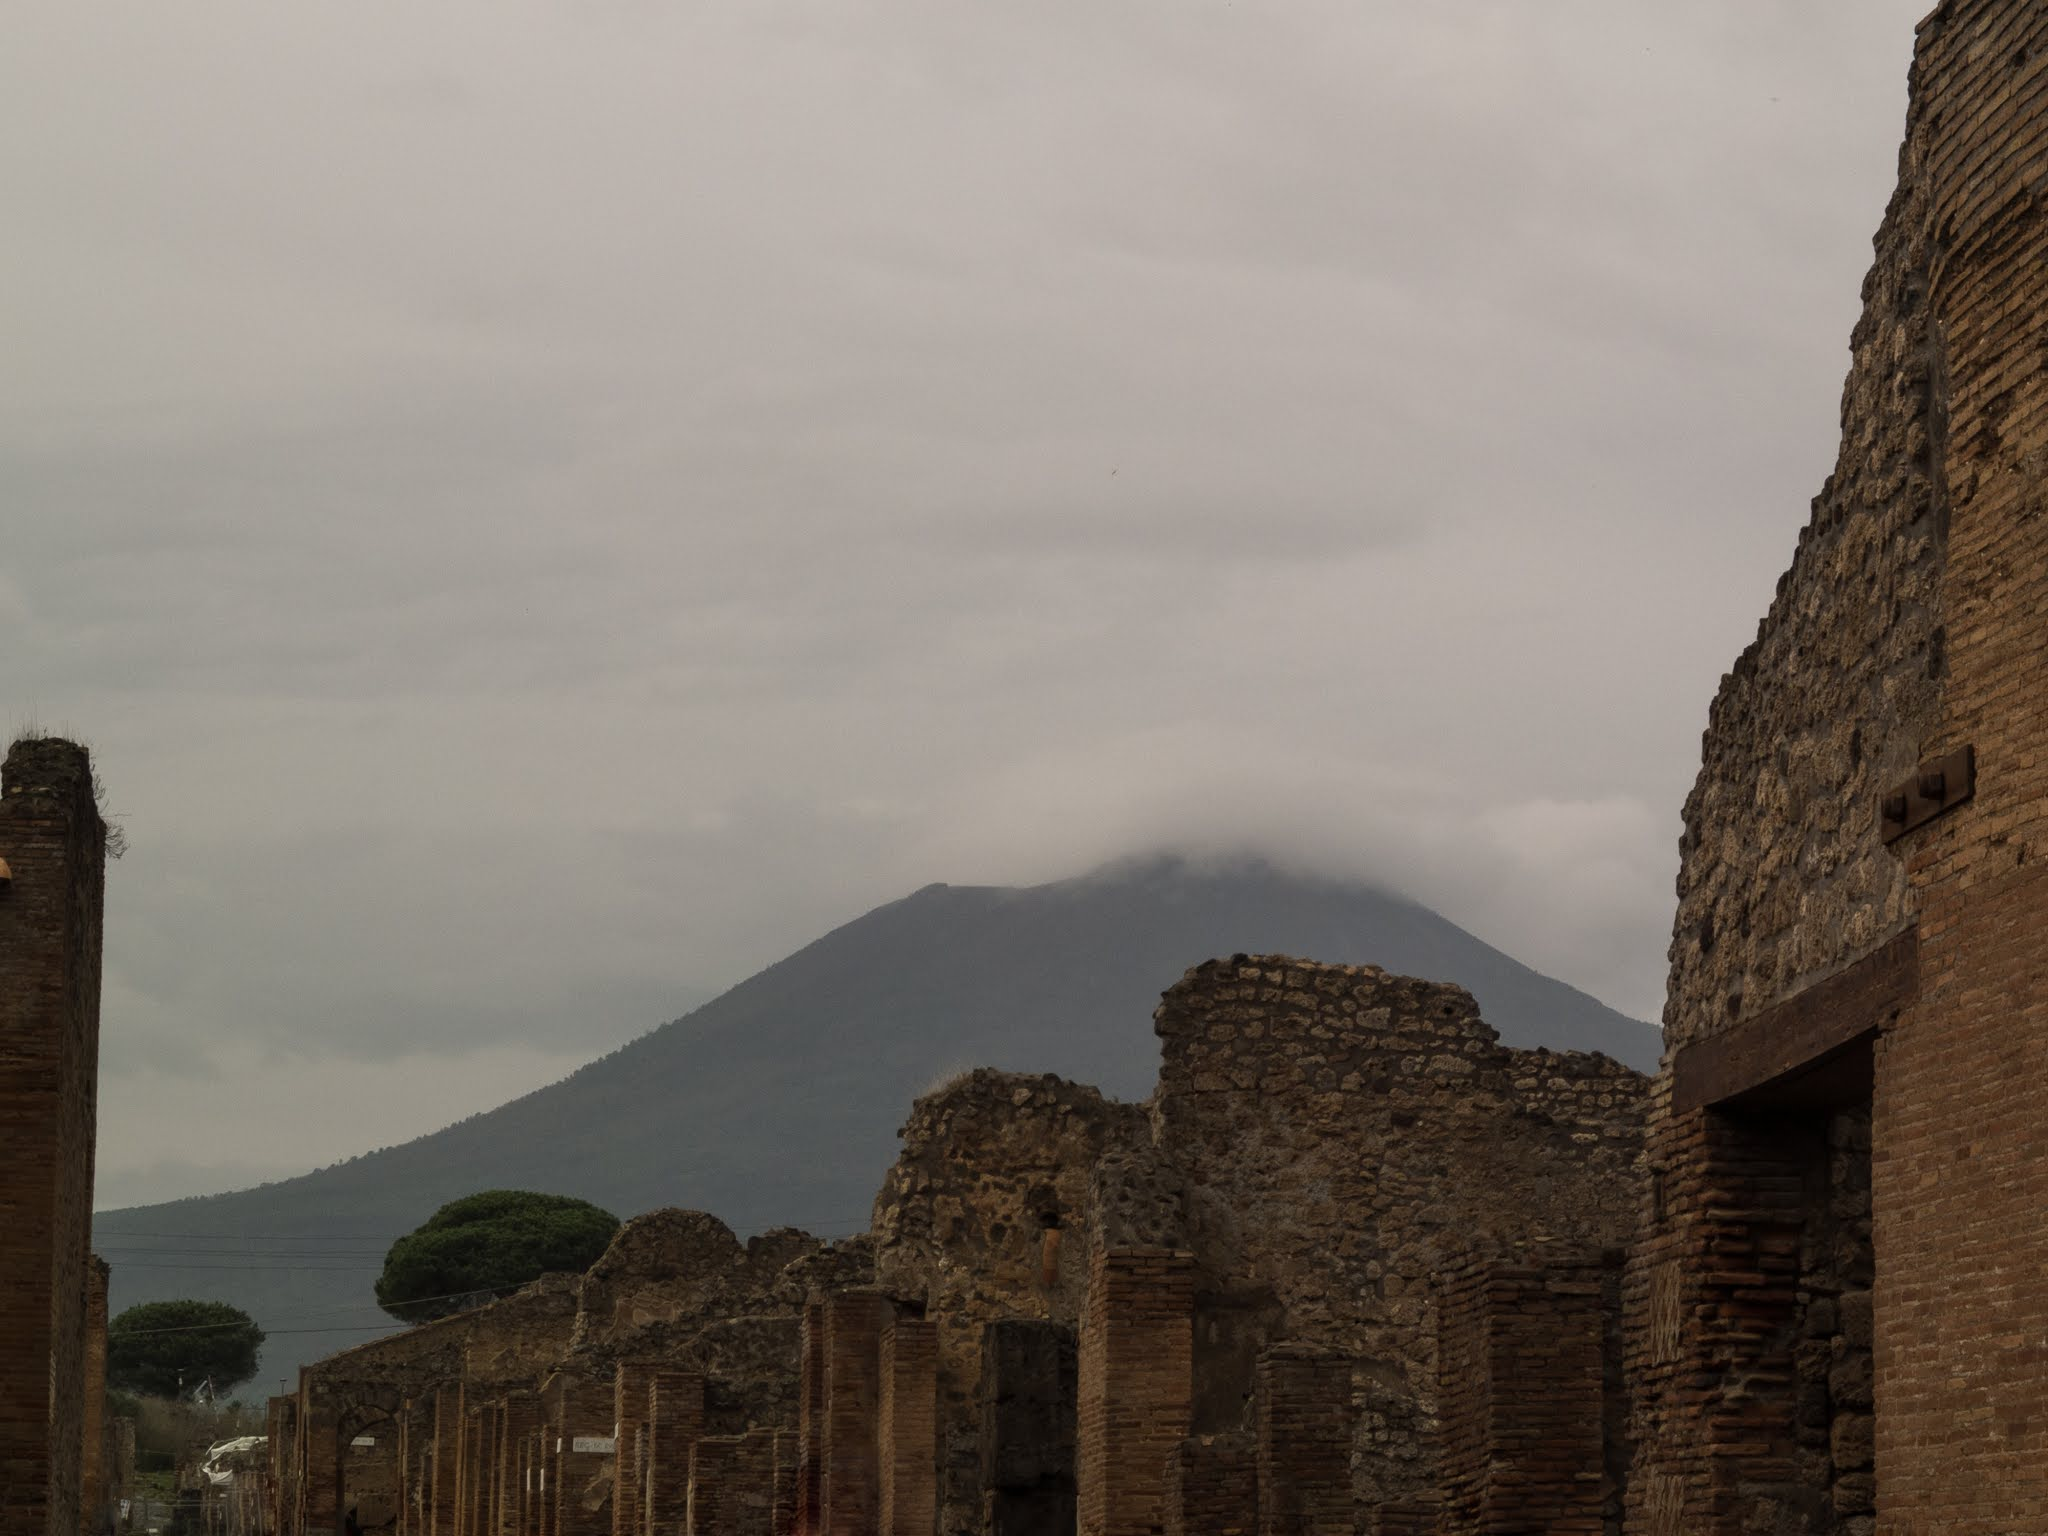 View of Mount Vesuvius from the streets of ancient Pompeii.